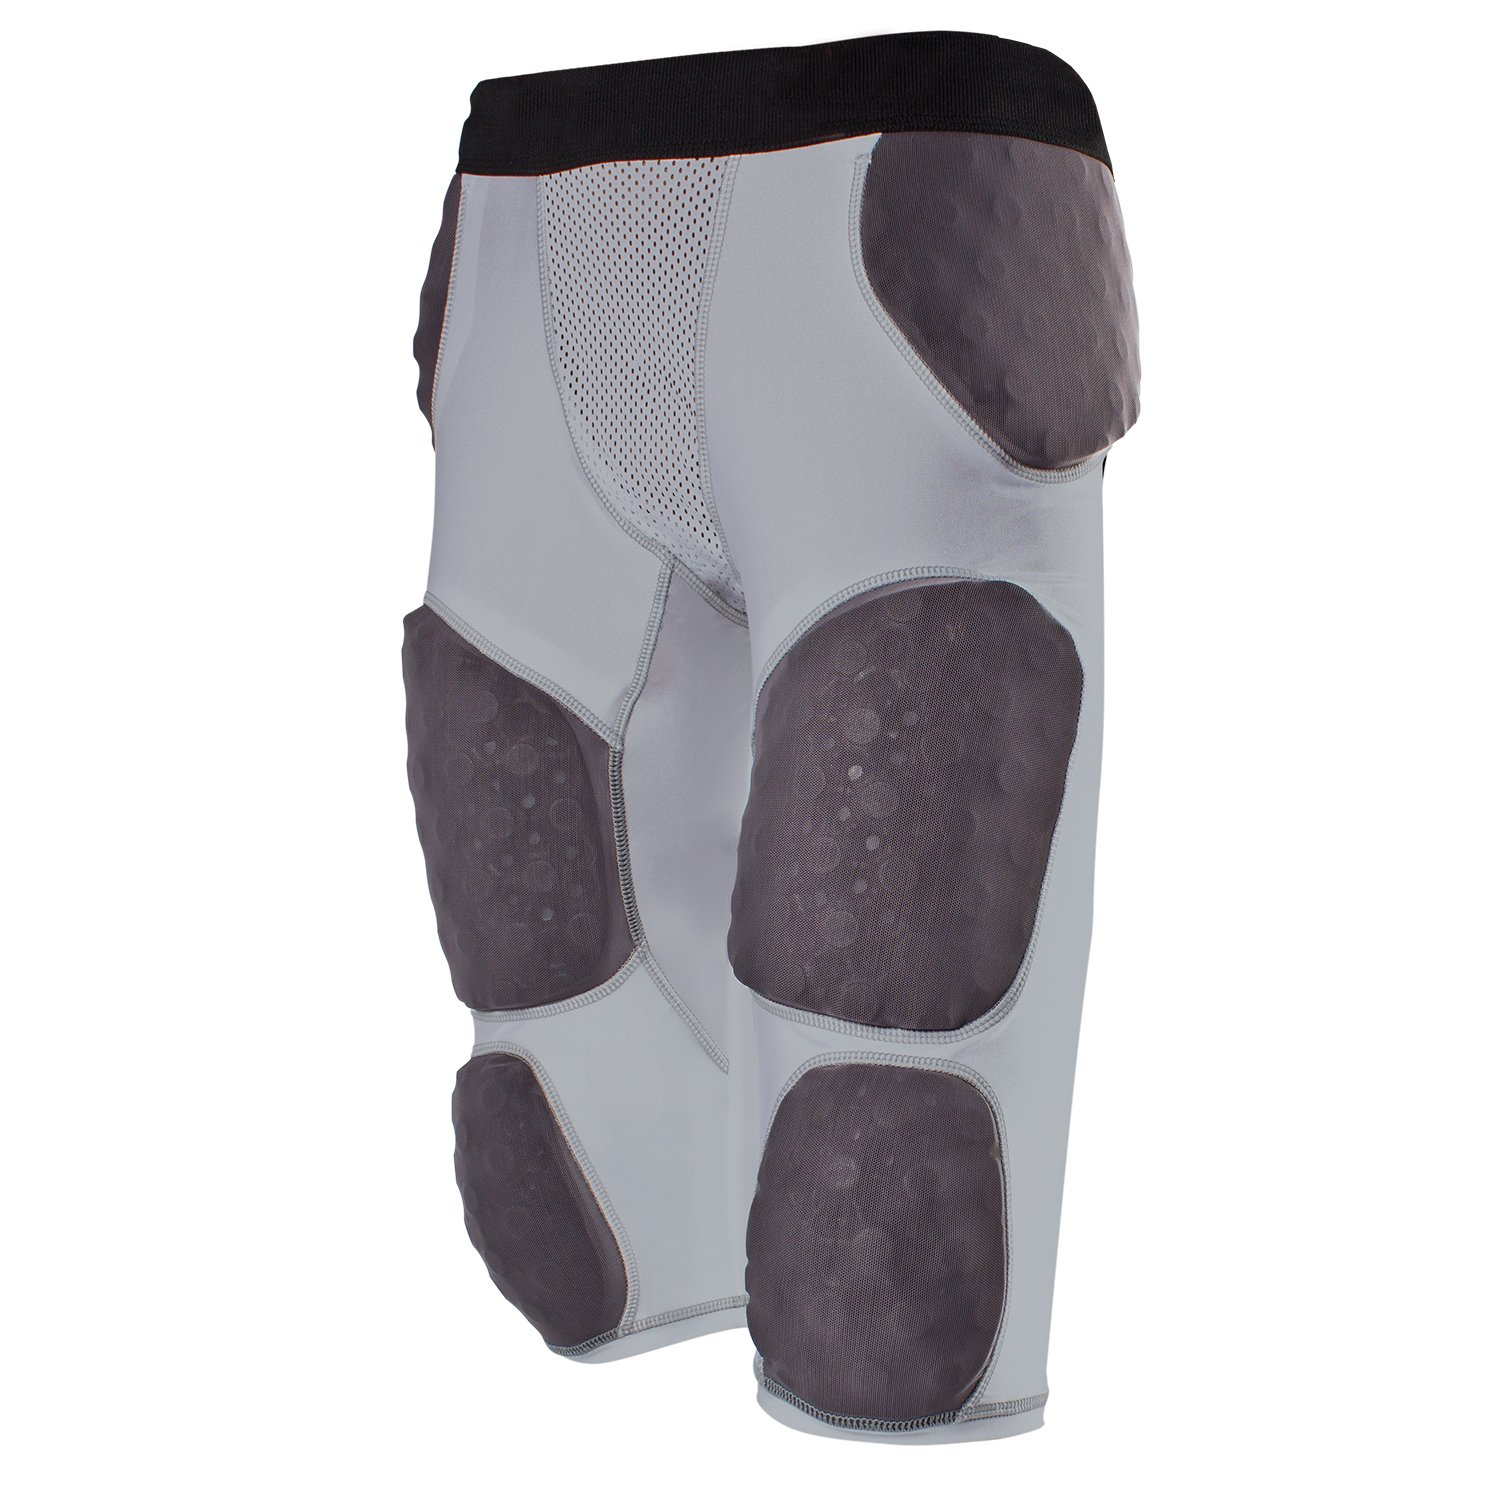 Cramer Lightning 7 Pad Football Girdle With Integrated Hip, Tailbone and Thigh Pads, Anti-Bacterial and Moisture-Wicking Fabric, Great Protection Without Impeding Athletic Performance, Gray, X-Large by Cramer (Image #1)